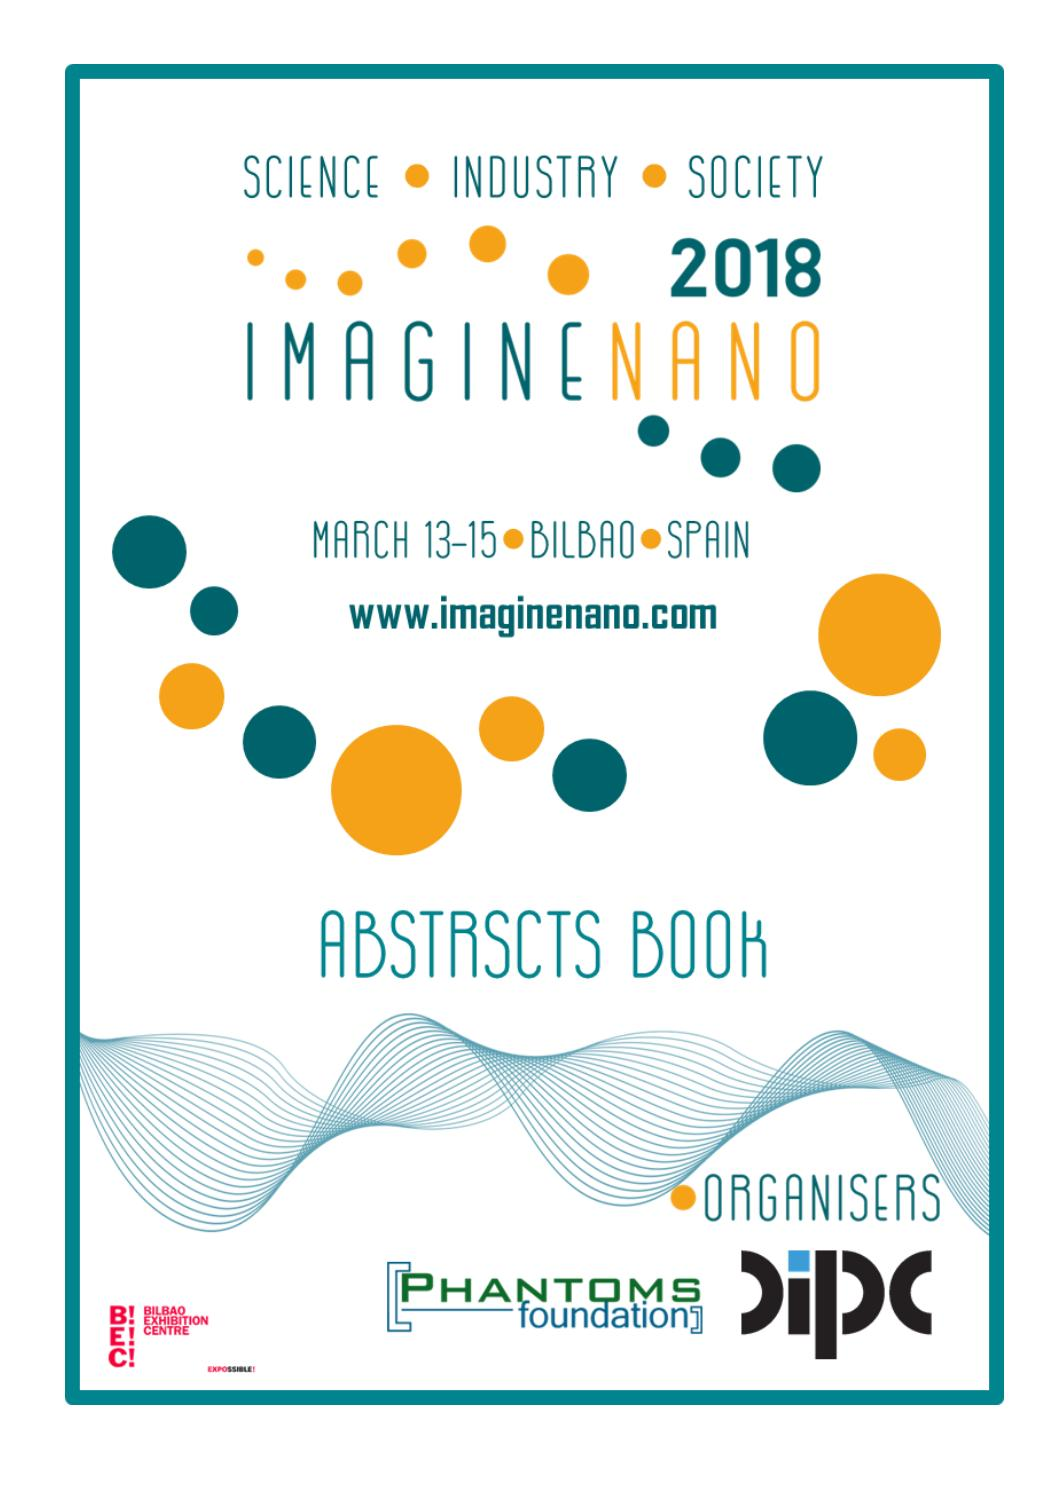 ImagineNano2018 Conference Abstracts Book by Phantoms Foundation - issuu